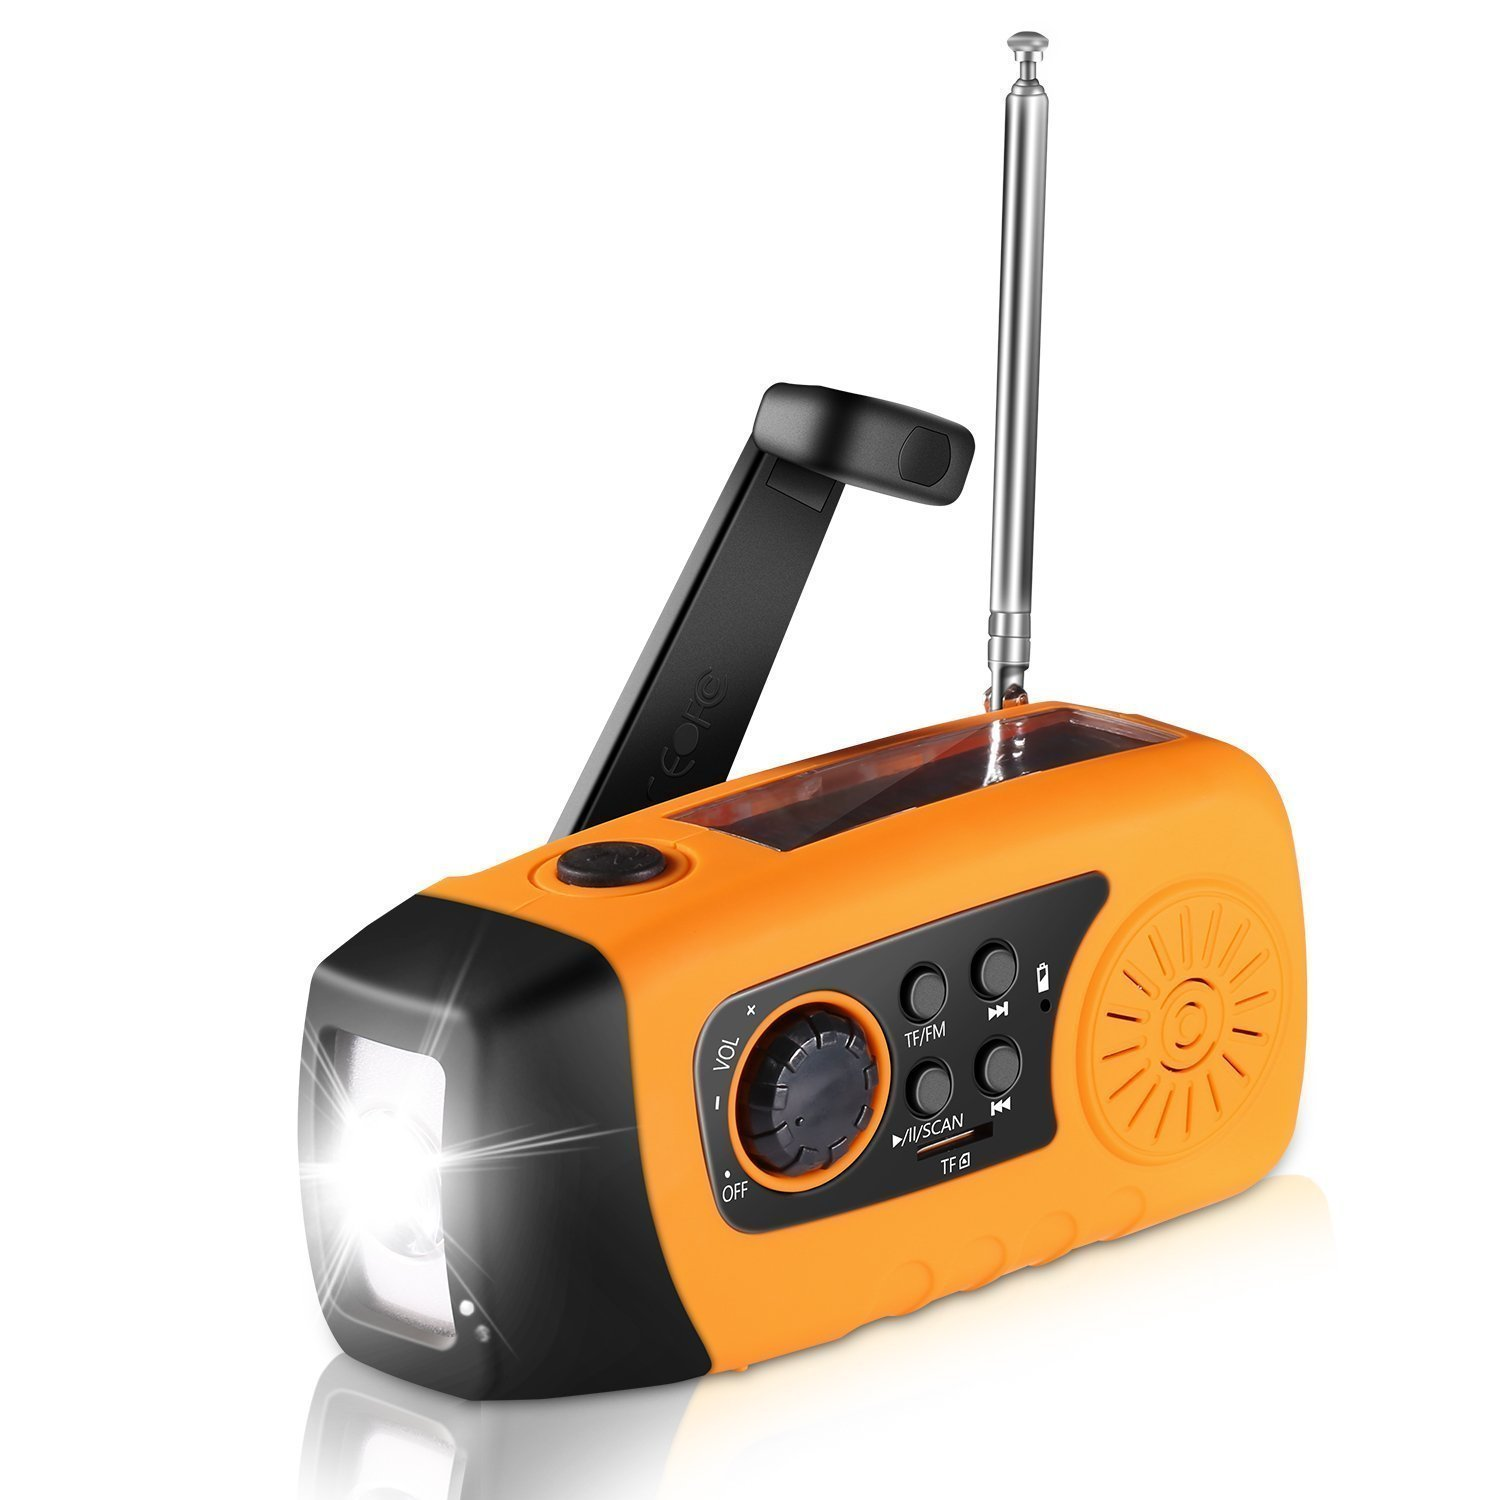 Diswoe Emergency Hand Crank, Self Powered FM Solar Weather Radio with LED Flashlight, MP3 Player, 2000mAh Power Bank for iPhone/Smart Phone Camping Outdoor Sports(Orange) by Diswoe